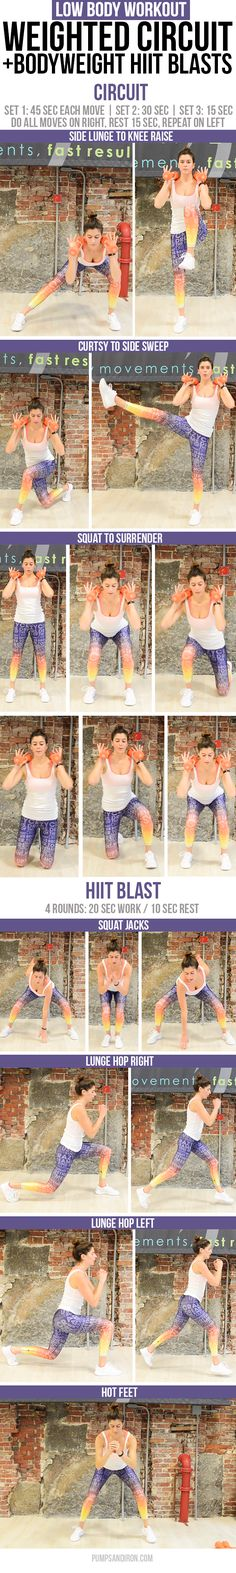 Lower Body Circuit Workout with HIIT Bursts